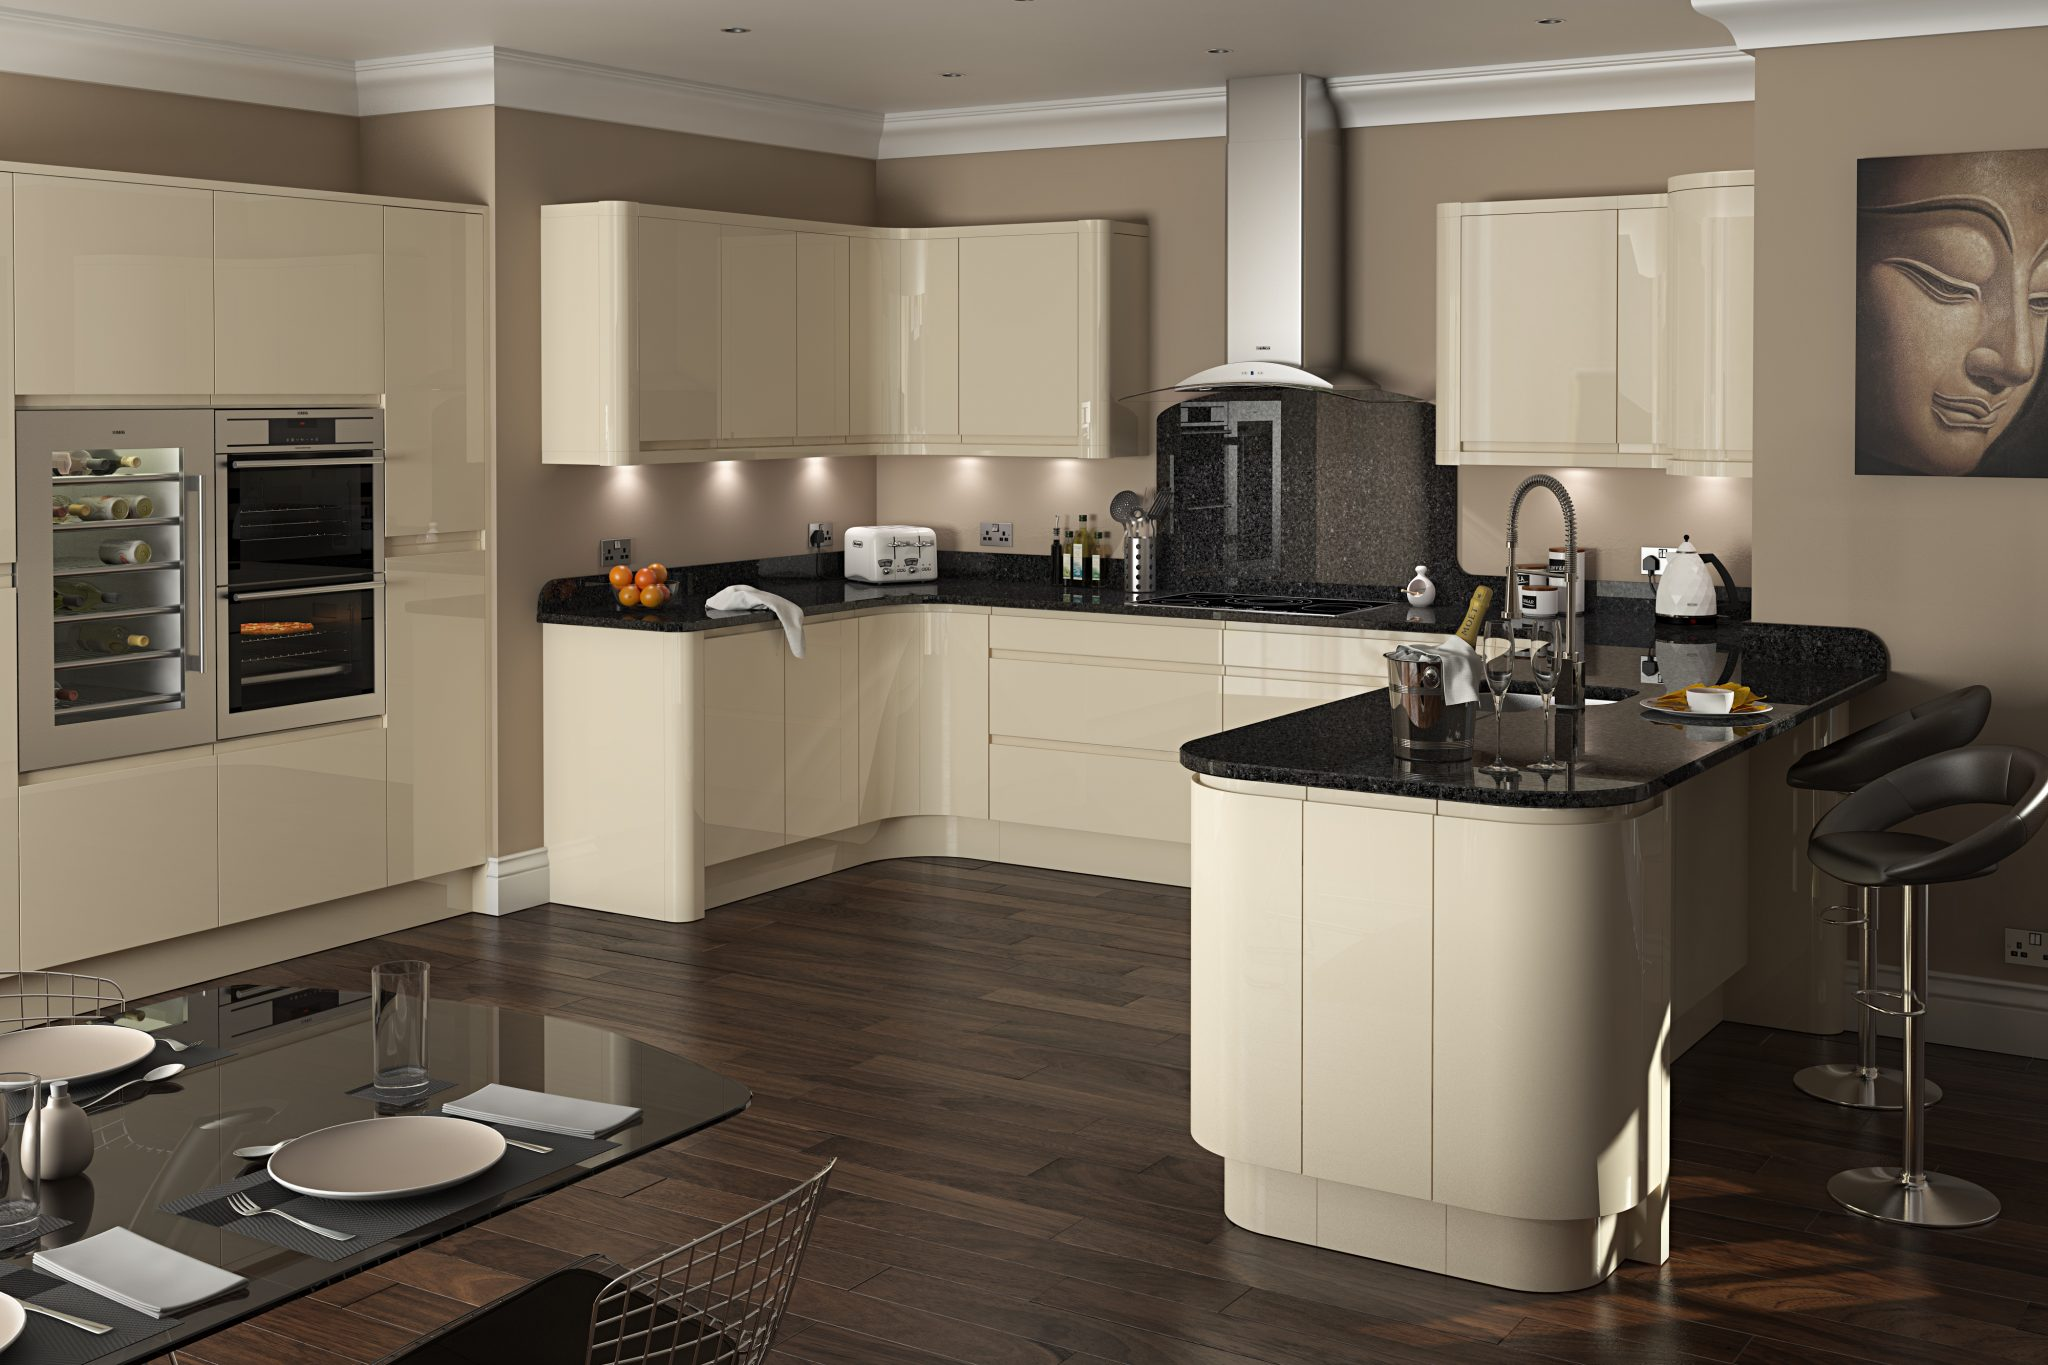 Kitchen design kitchens wirral bespoke luxury designs for Kitchen design ideas pictures